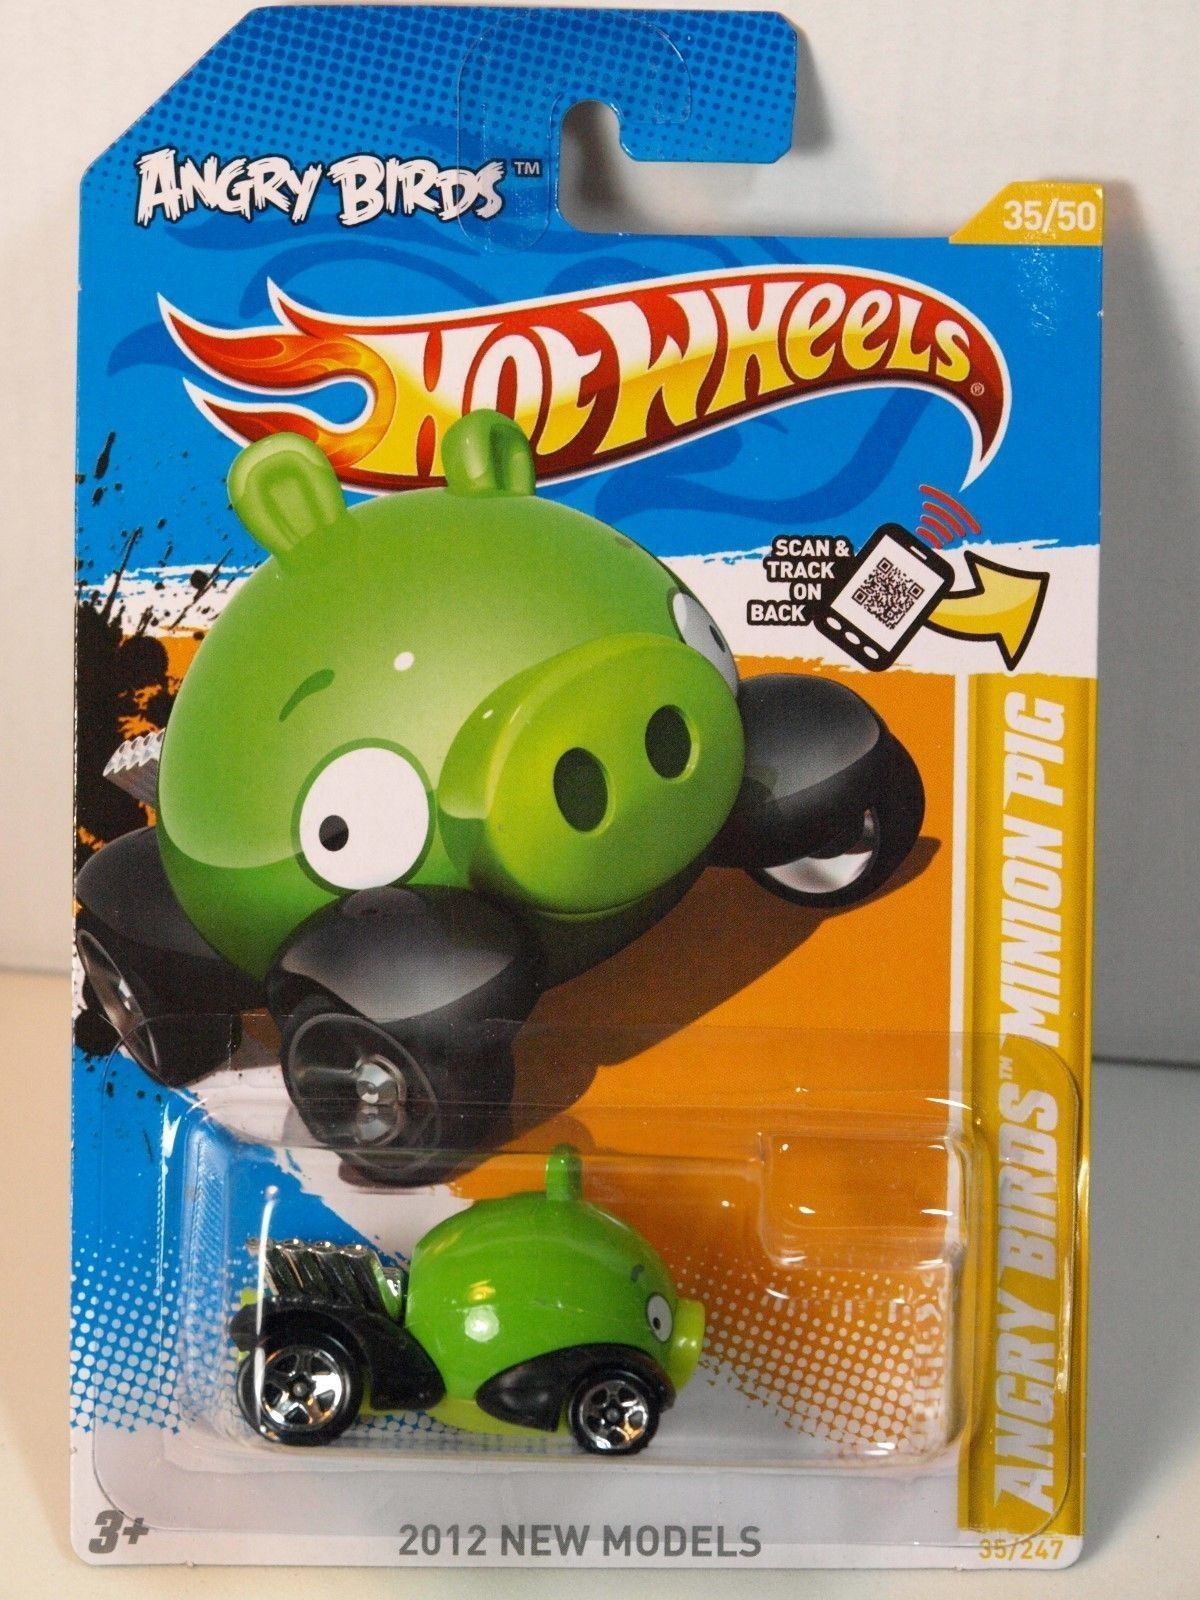 Hot Wheels 2012 New Models 35/50 Angry Birds Minion Pig Green